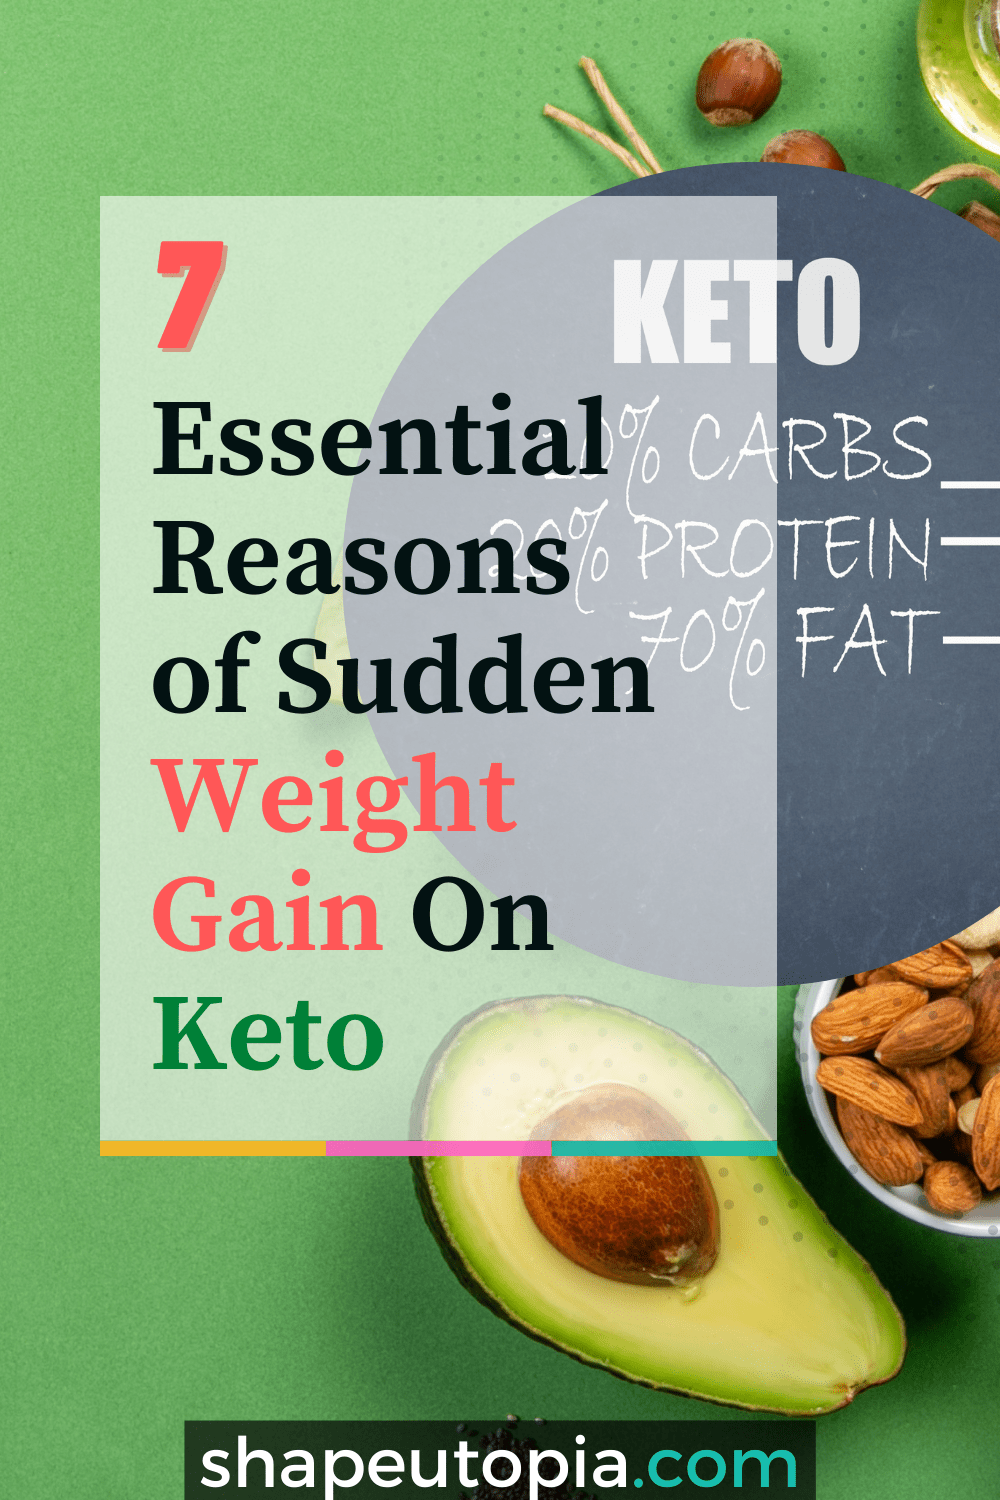 7 Essential Reasons of Sudden Weight Gain On Keto